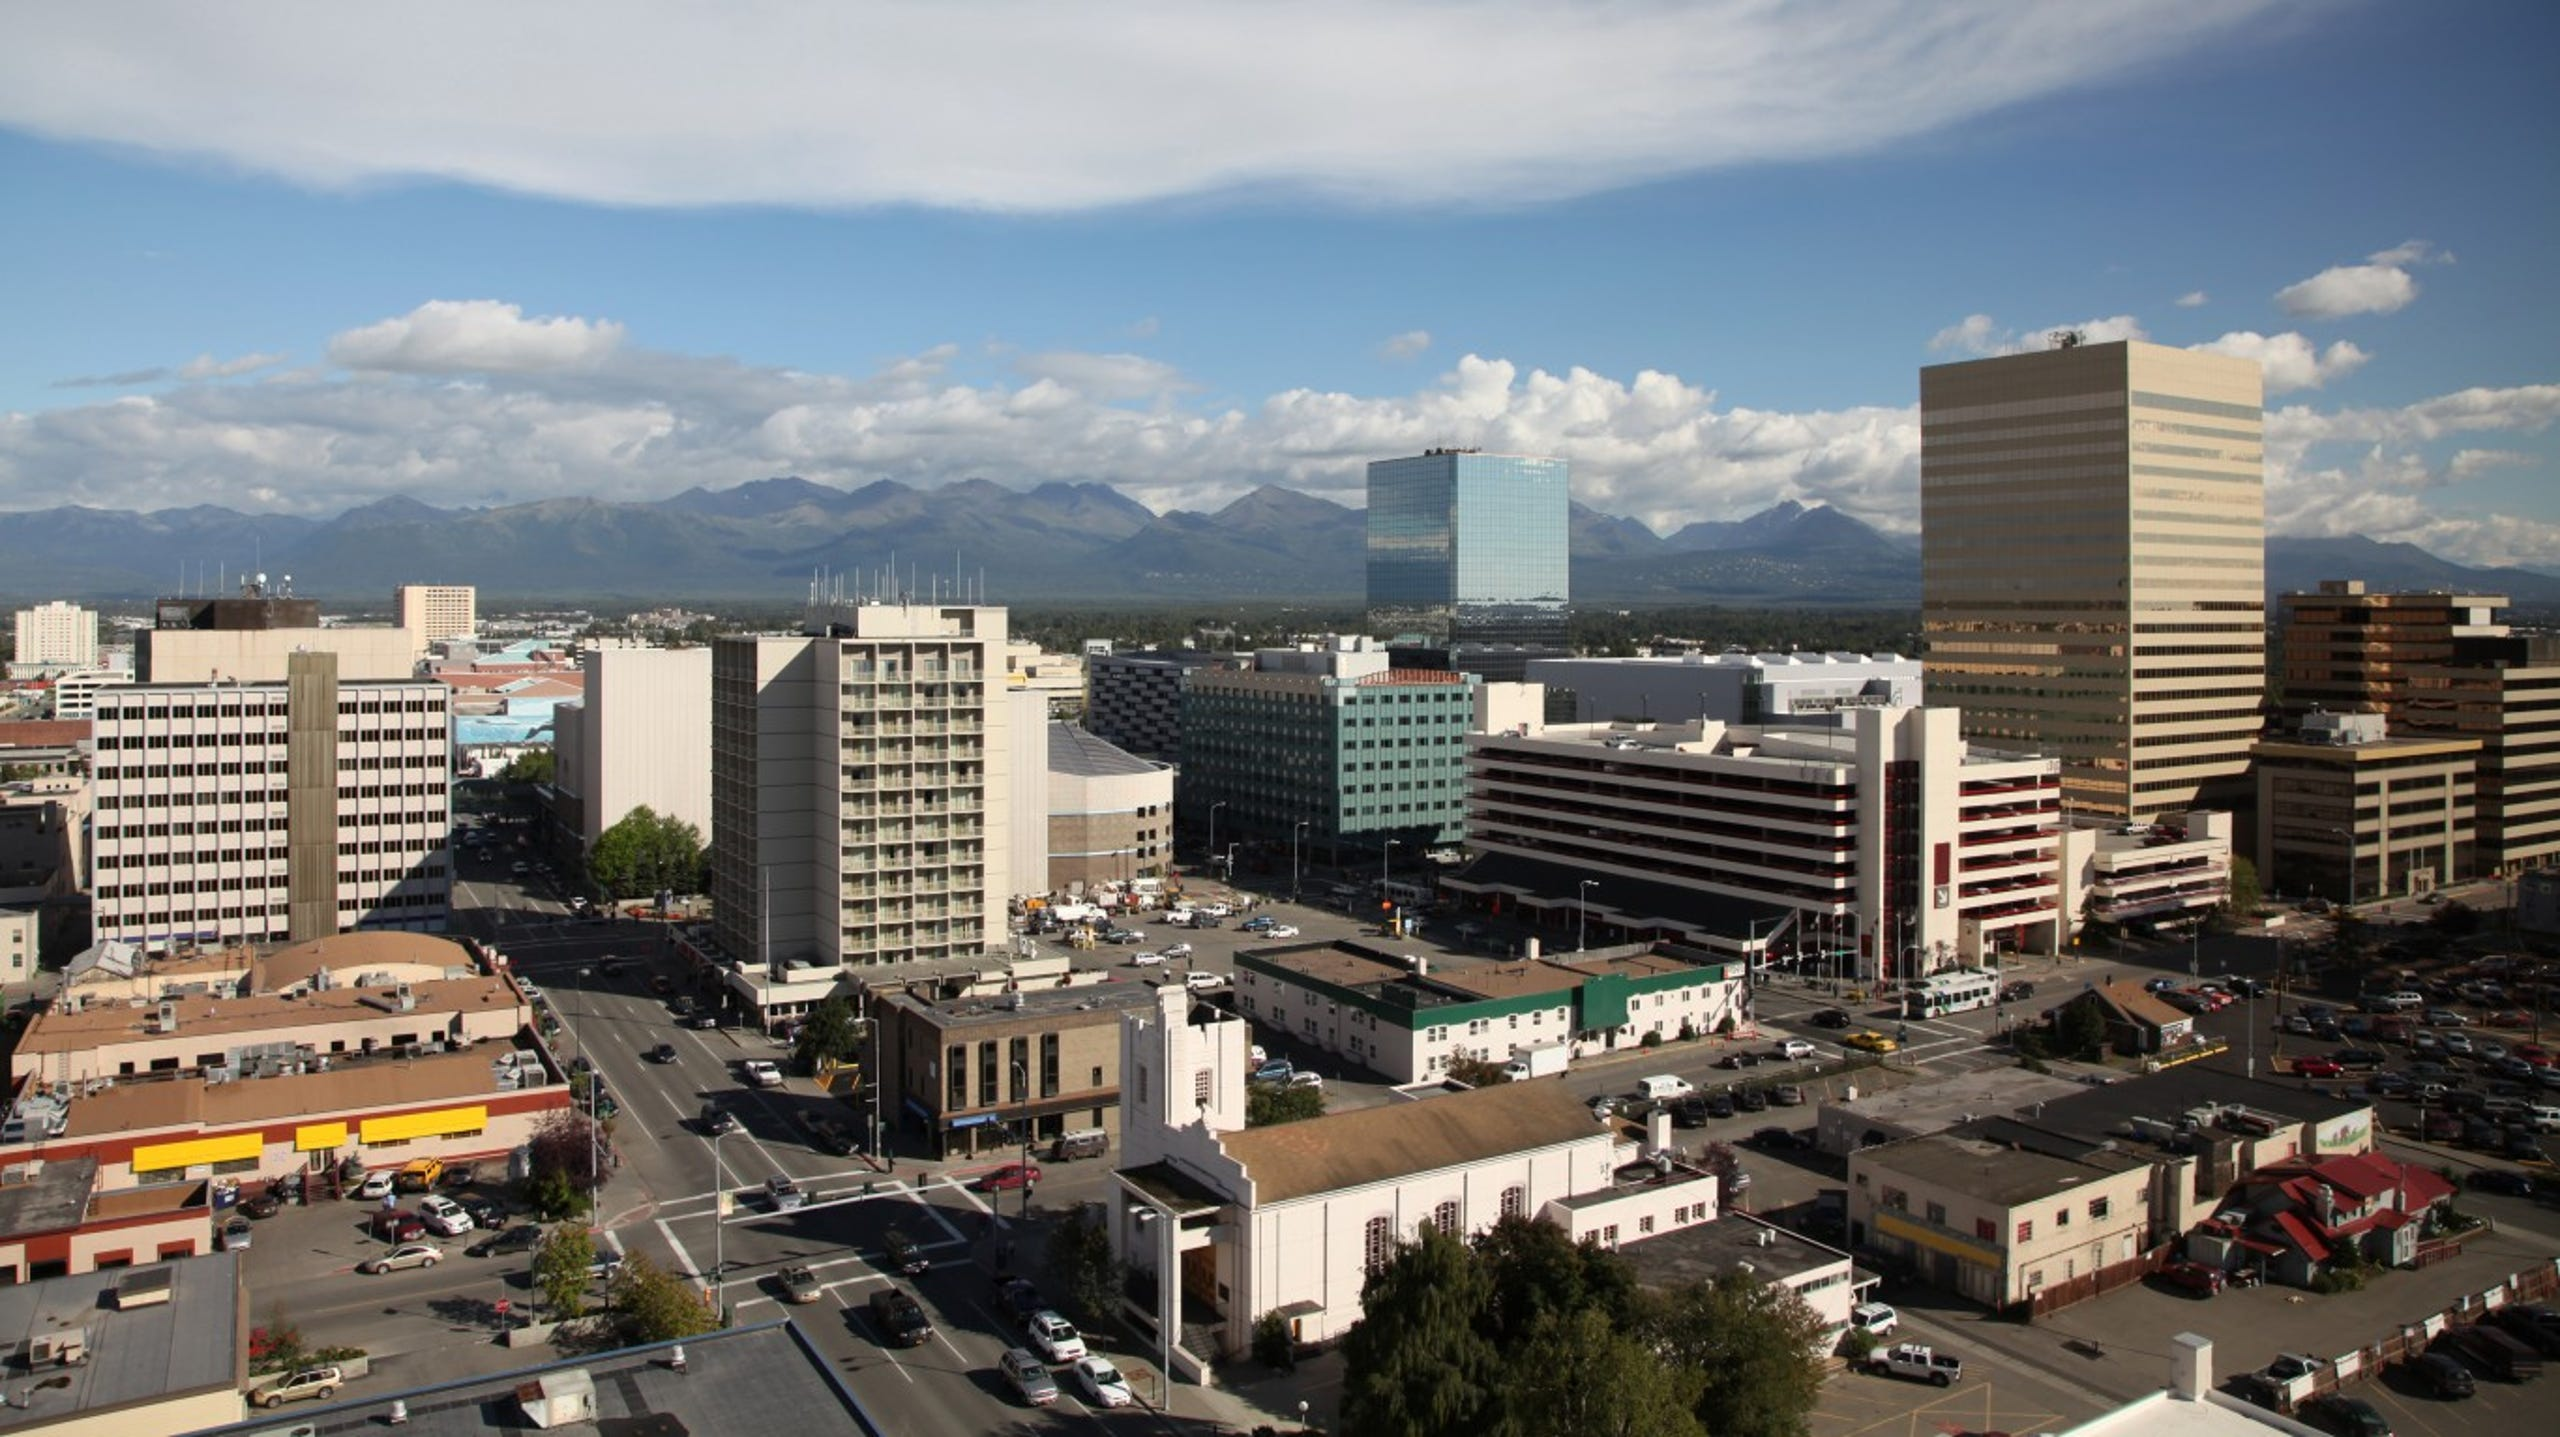 <strong>8. Anchorage, Alaska</strong><br /> <strong>&bull; Preschool enrollment:</strong> 33.0% (lowest 20%)<br /> <strong>&bull; High school graduation rate:</strong> 79.4% (lowest 20%)<br /> <strong>&bull; Pop. with access to areas for exercise:</strong> 83.6%<br /> <strong>&bull; Property crime rate:</strong> 5,441 crimes per 100,000 people (highest 10%)